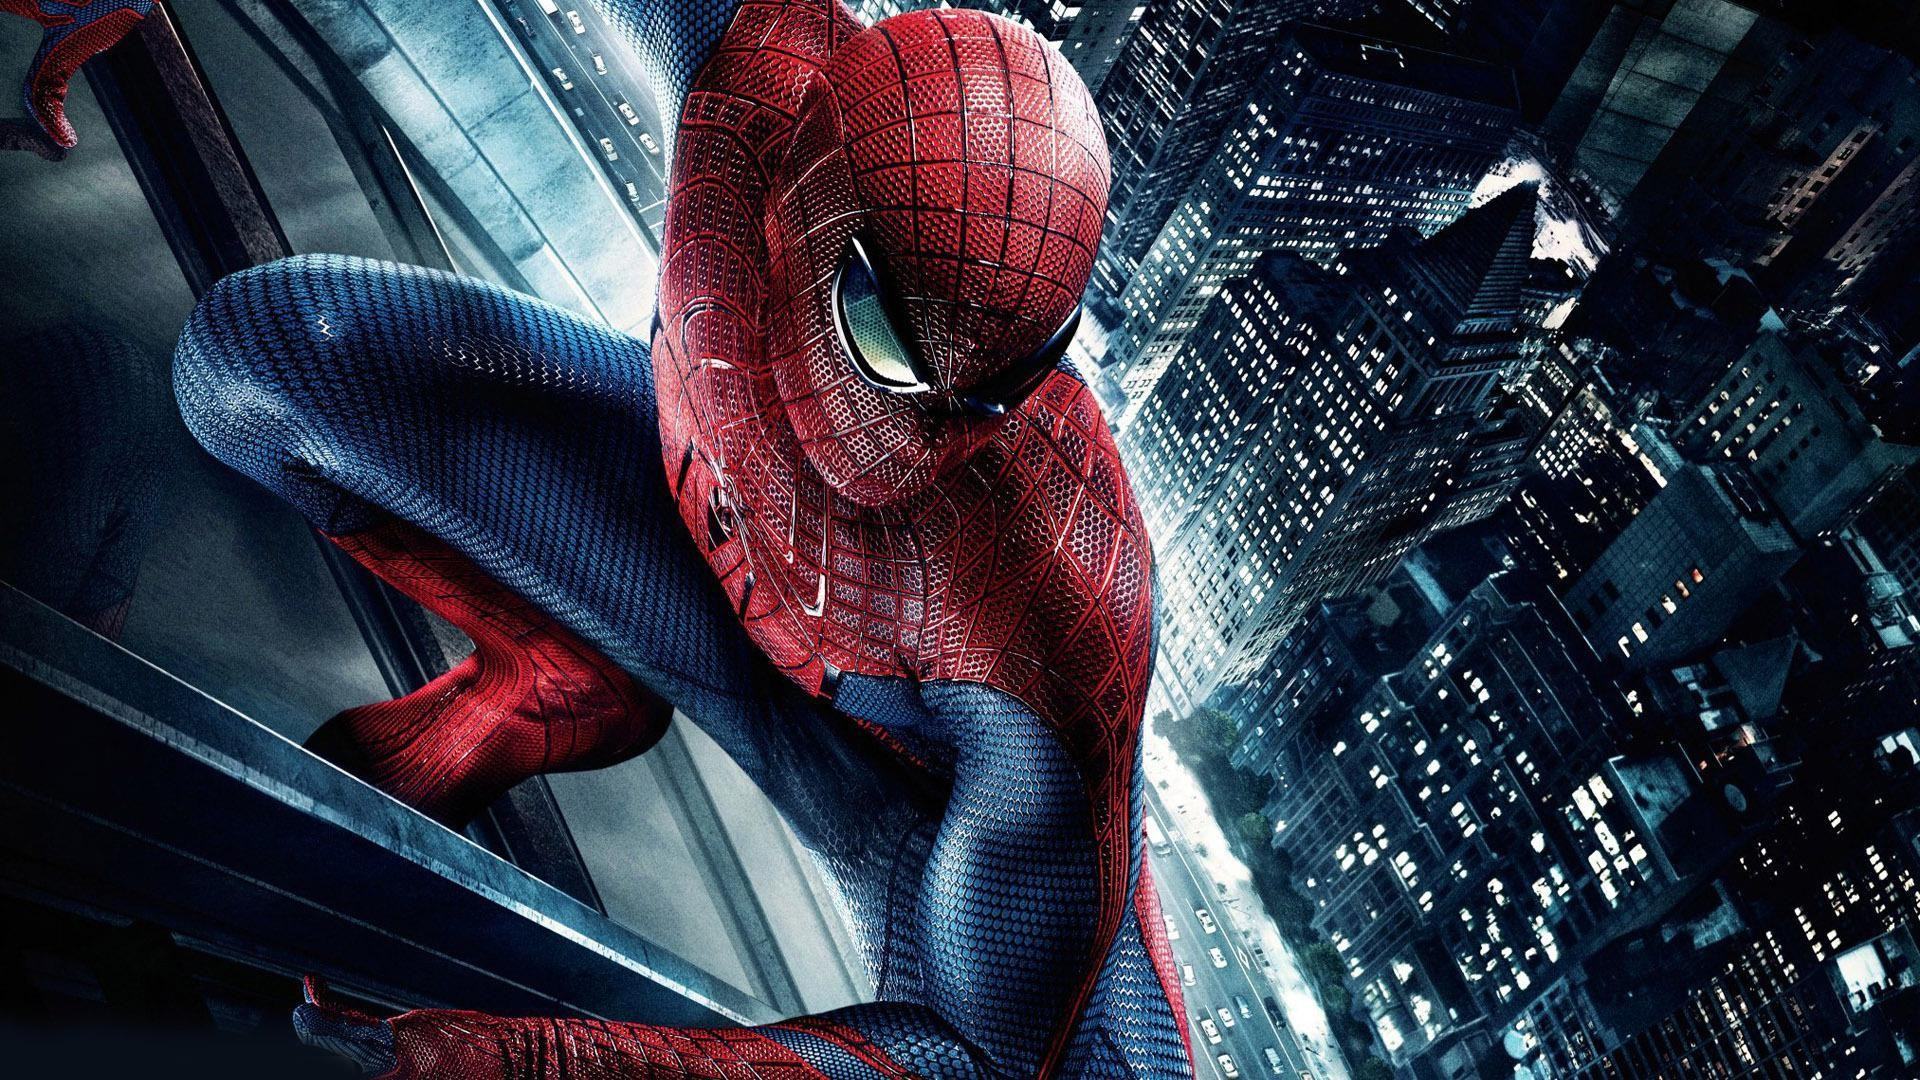 Undefined Cool Wallpaper For Iphone 40 Wallpapers: Spiderman Wallpaper HD ·① Download Free HD Wallpapers For